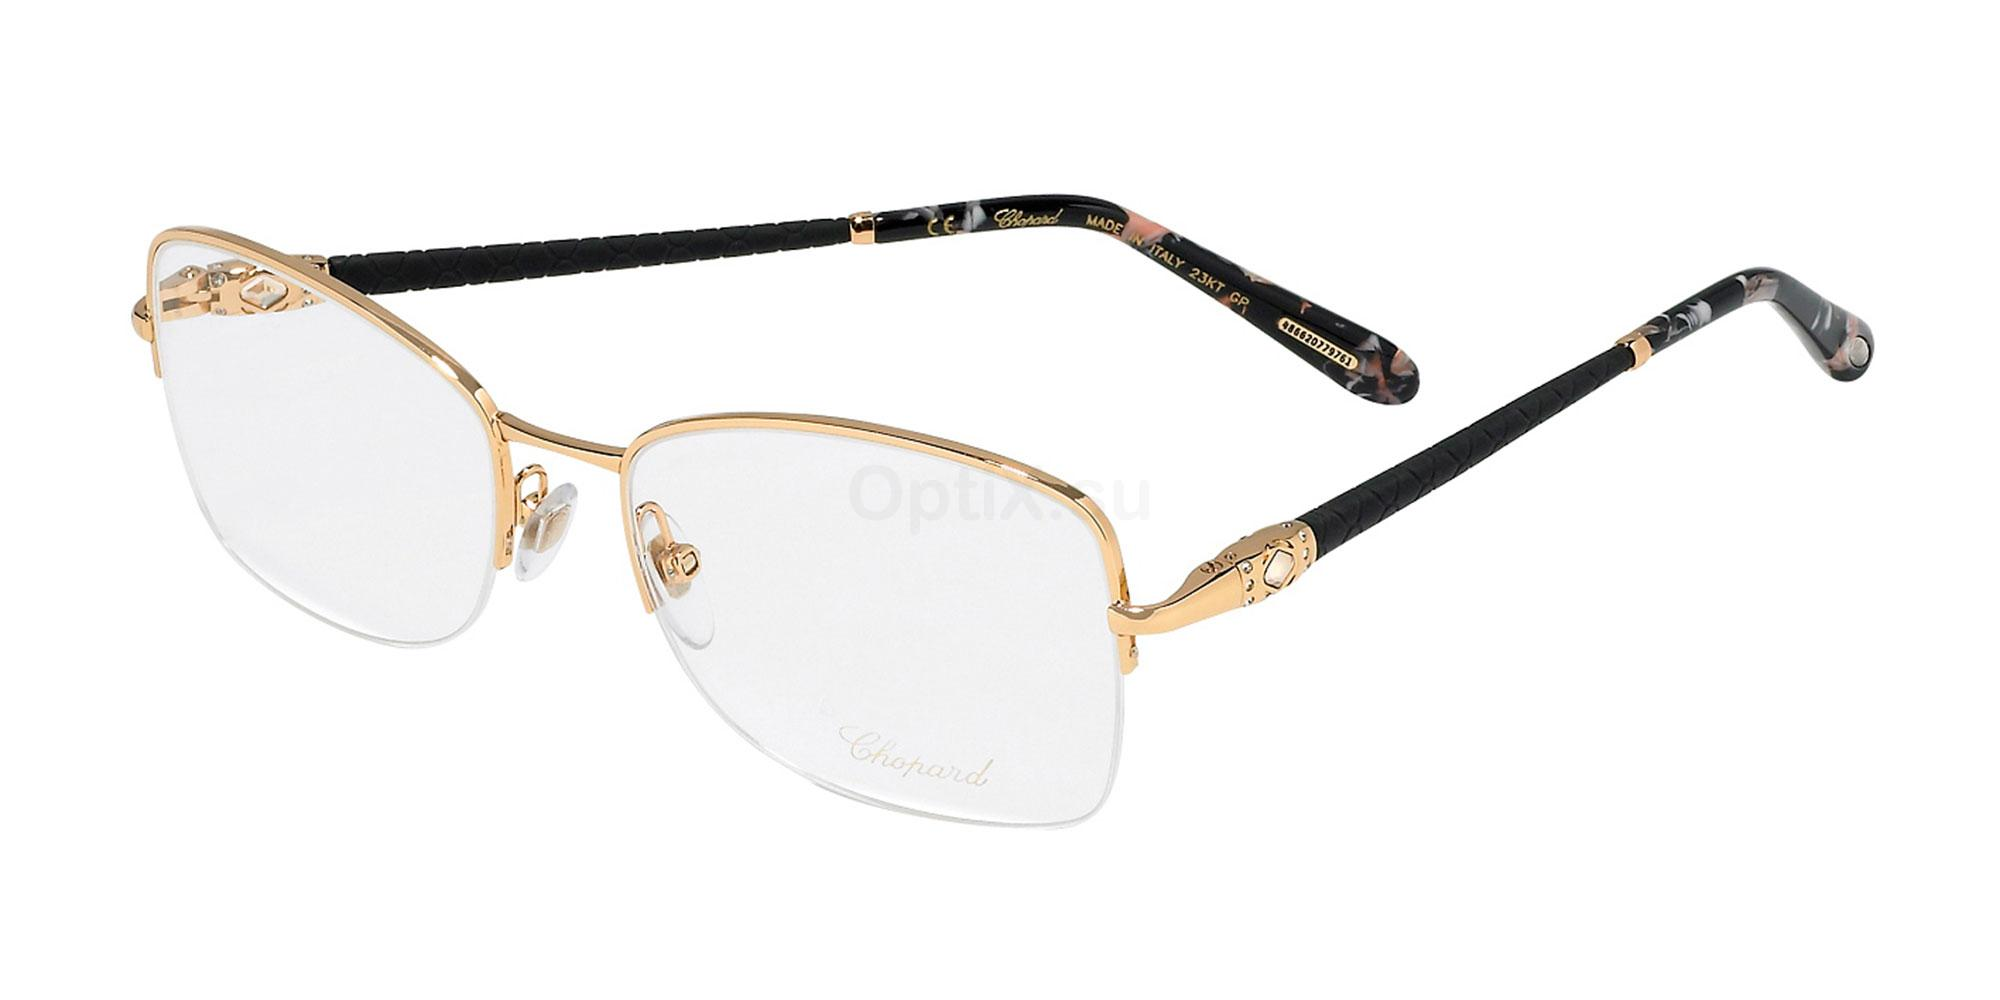 0300 VCHC72S Glasses, Chopard